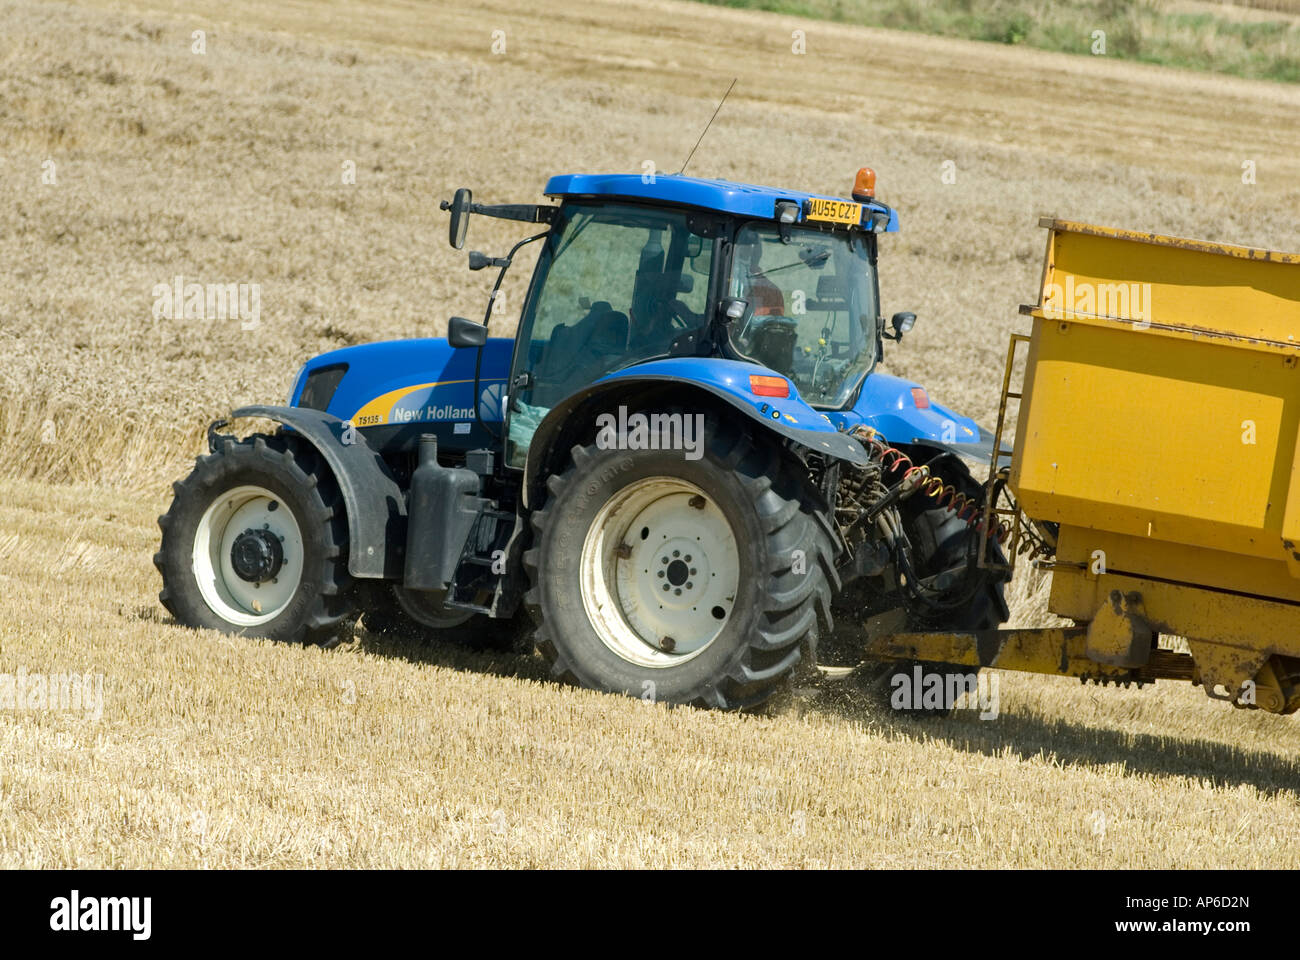 Blue Holland Tractors : Blue new holland tractor stock photo royalty free